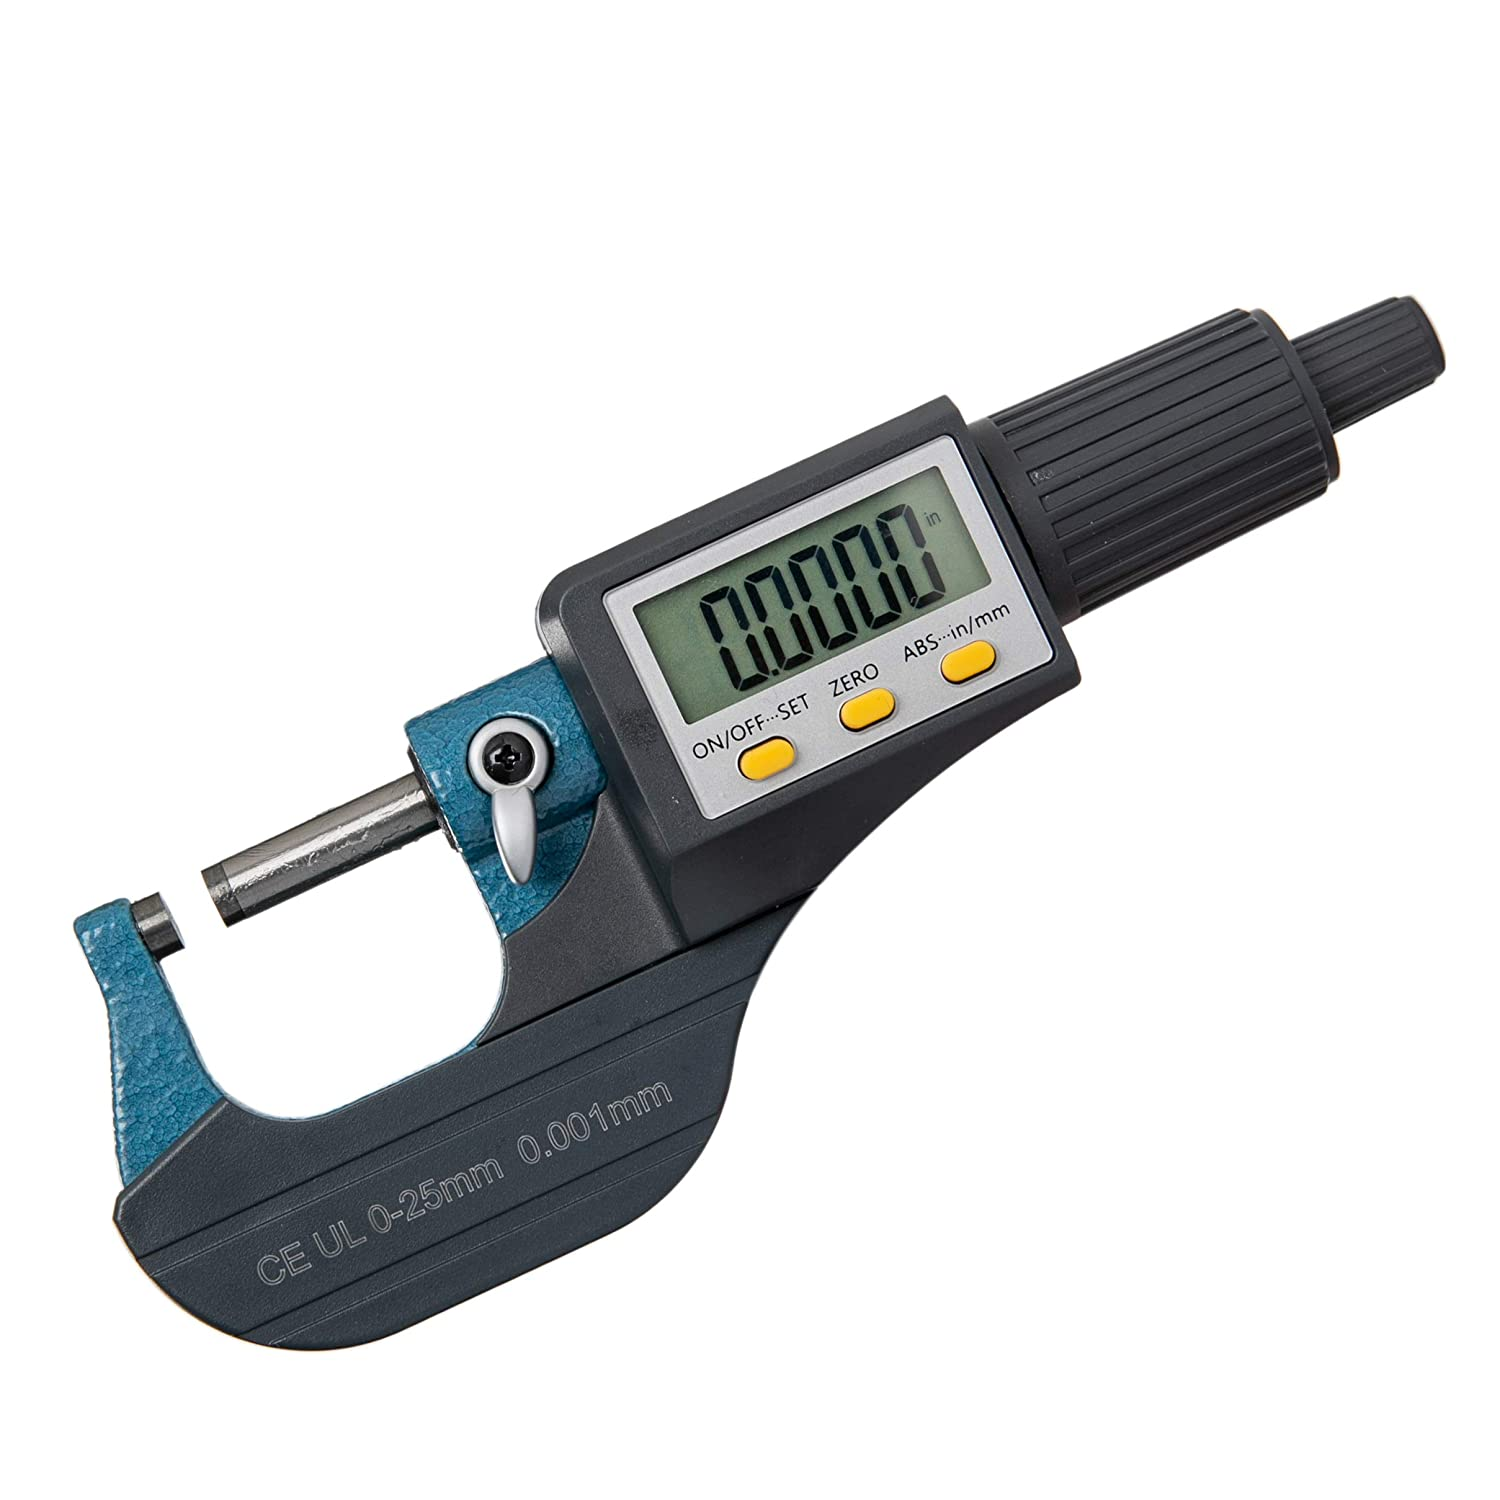 0-25mm Digital Outside Micrometer Electronic Thickness Gauge 0.001mm Vernier